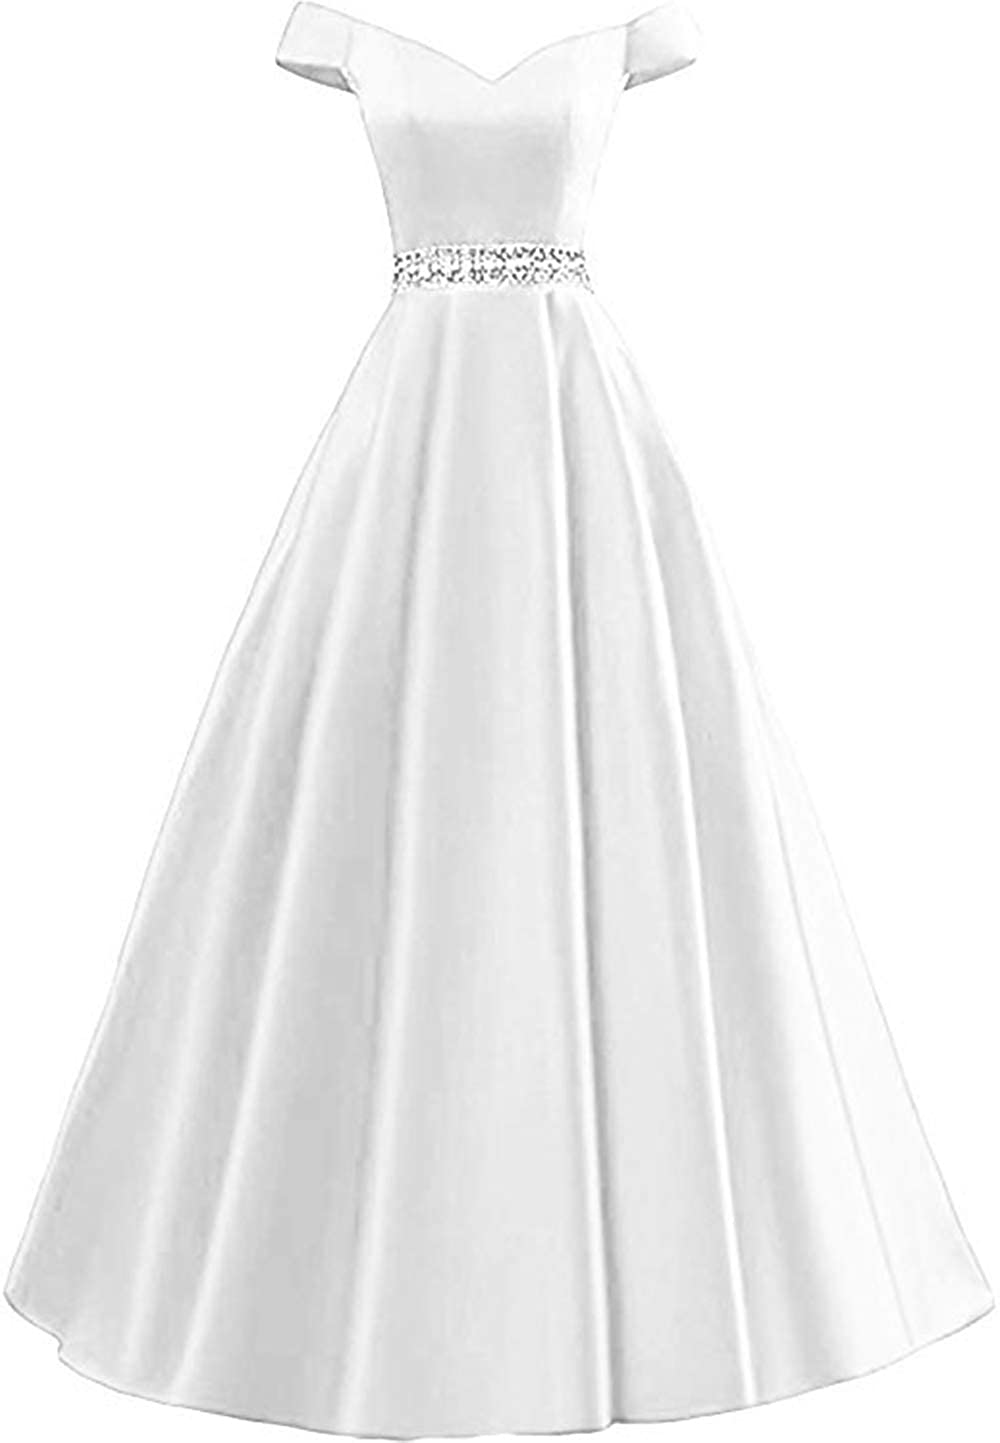 White Rmaytiked Women's Off Shoulder Prom Dresses Long 2019 Satin Beaded A Line Formal Evening Ball Gowns with Pockets